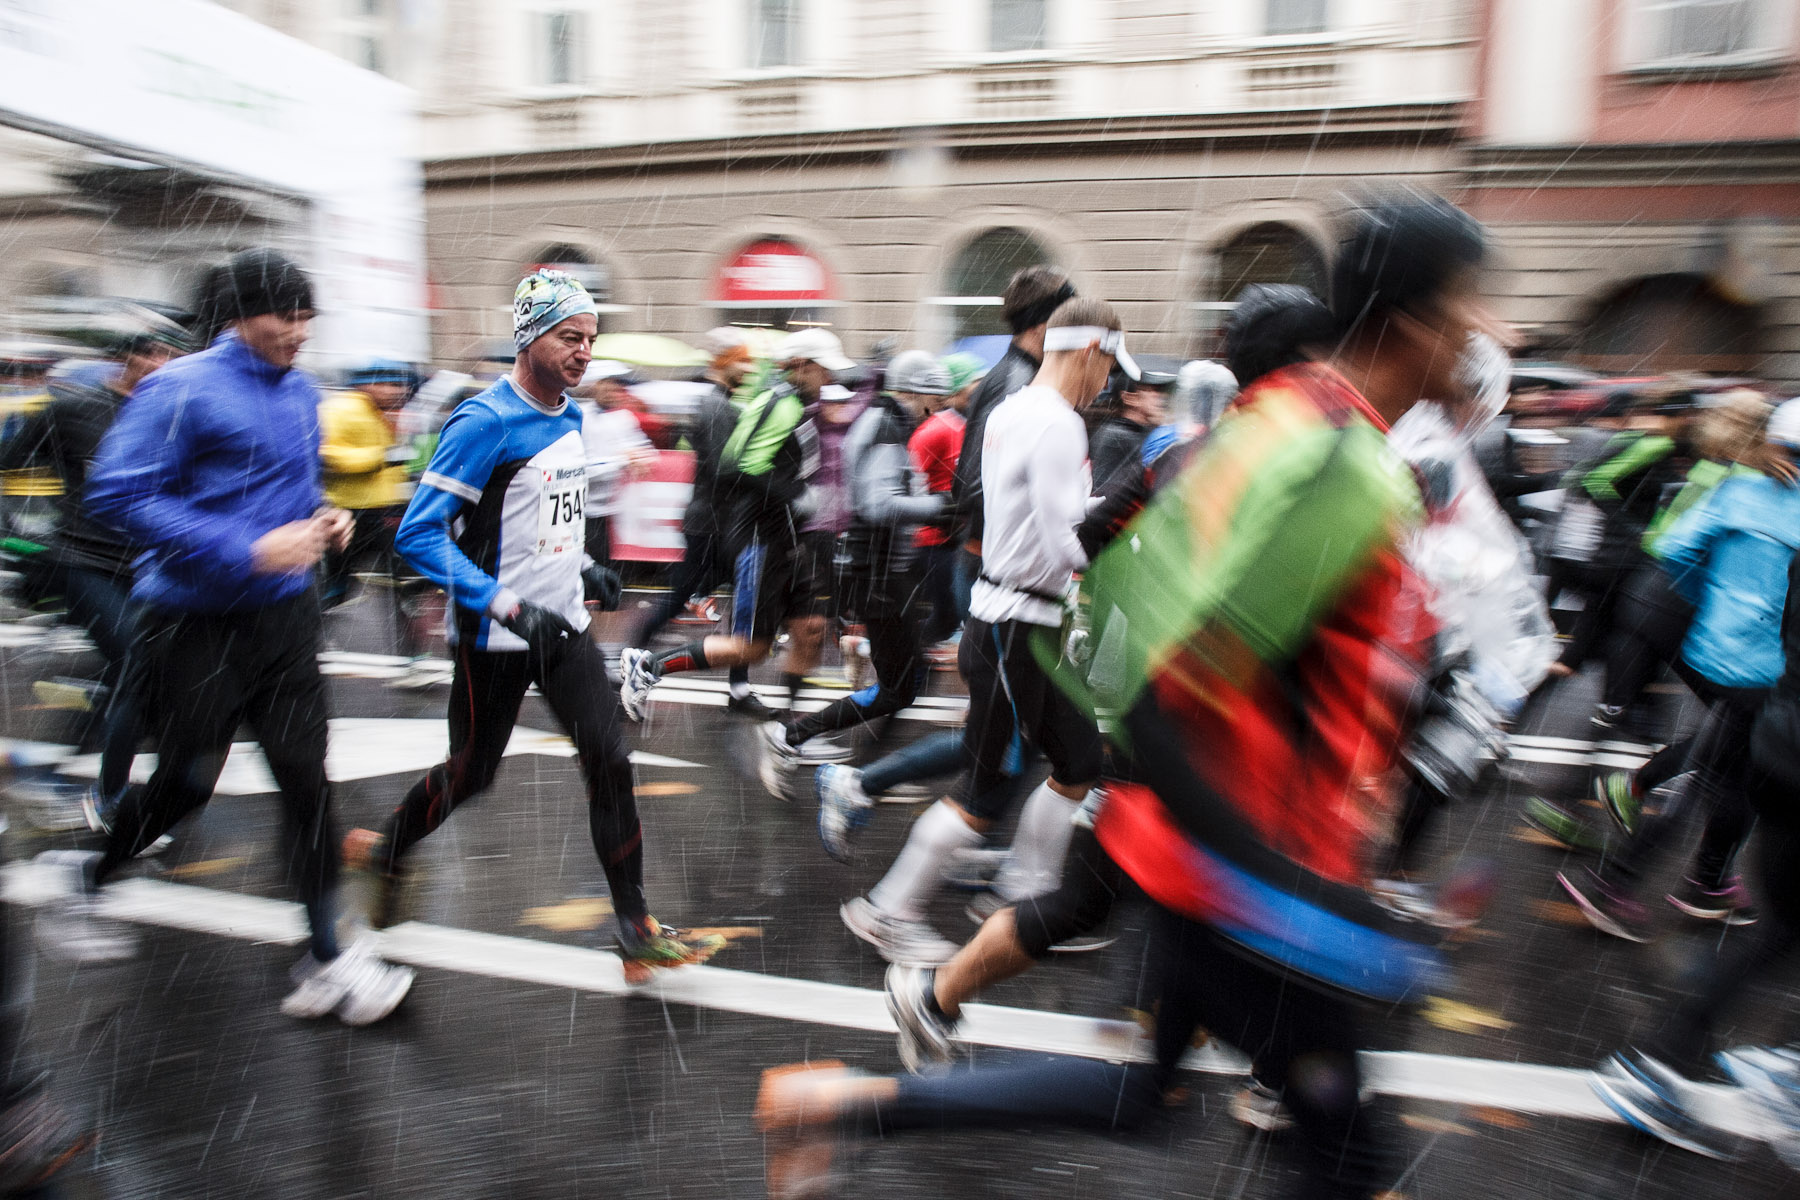 Athletes compete in the 17th International Ljubljana Marathon on Oct 28, 2012 in Ljubljana, Slovenia.